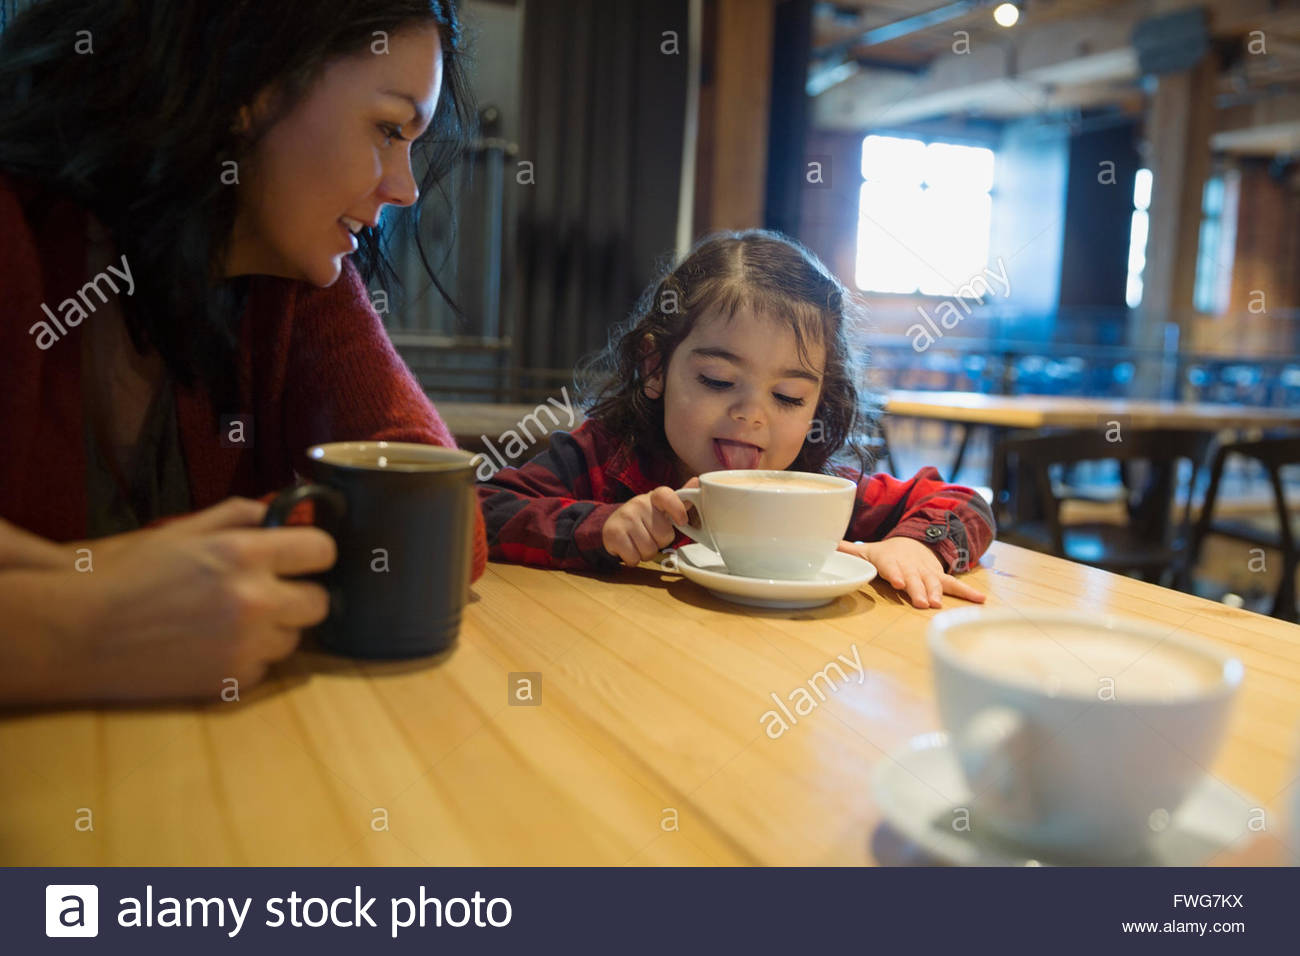 Mother watching daughter lick hot cocoa in a cafe - Stock Image